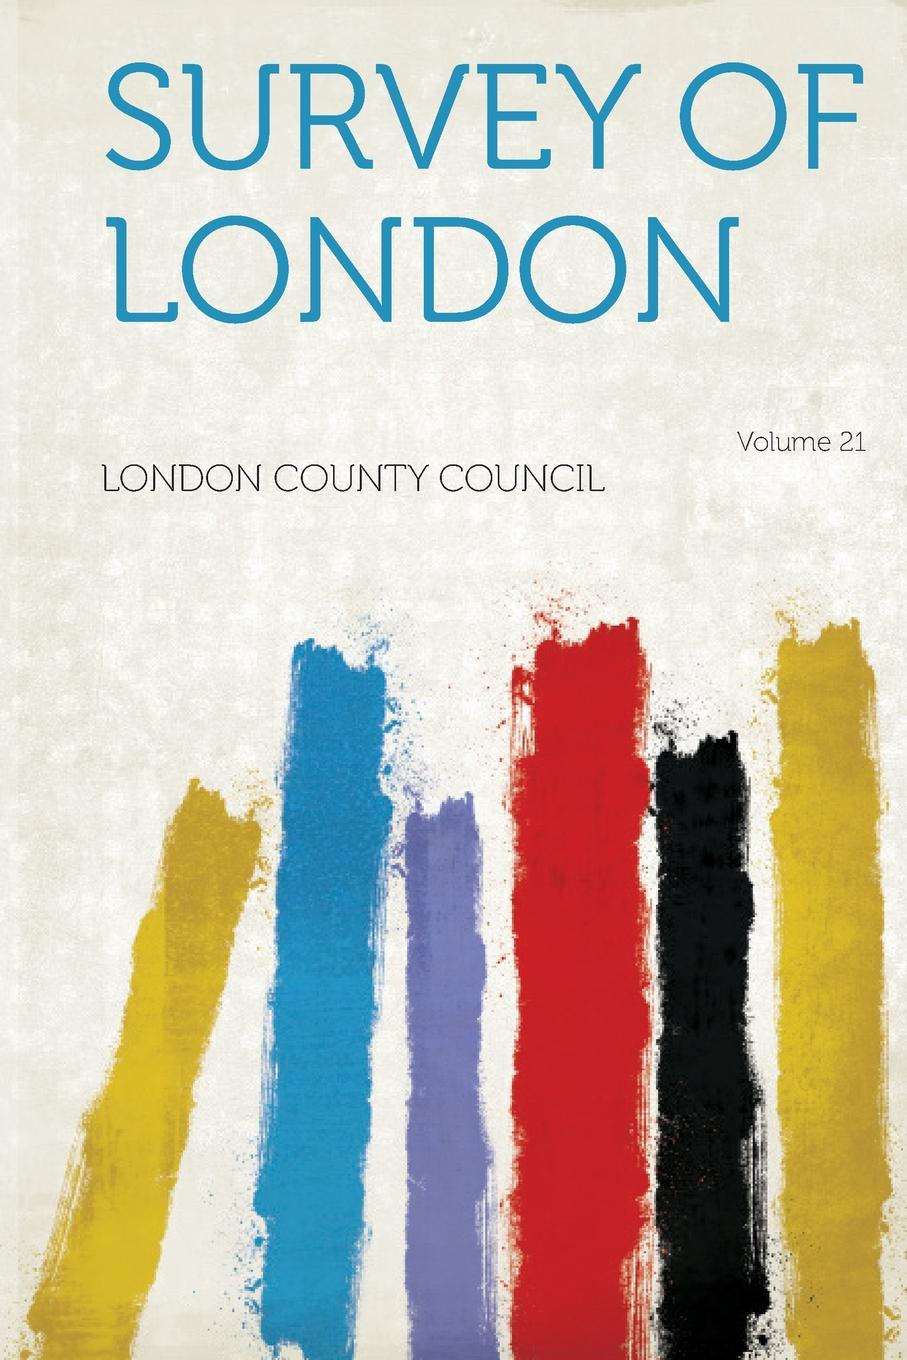 London County Council Survey of London Volume 21